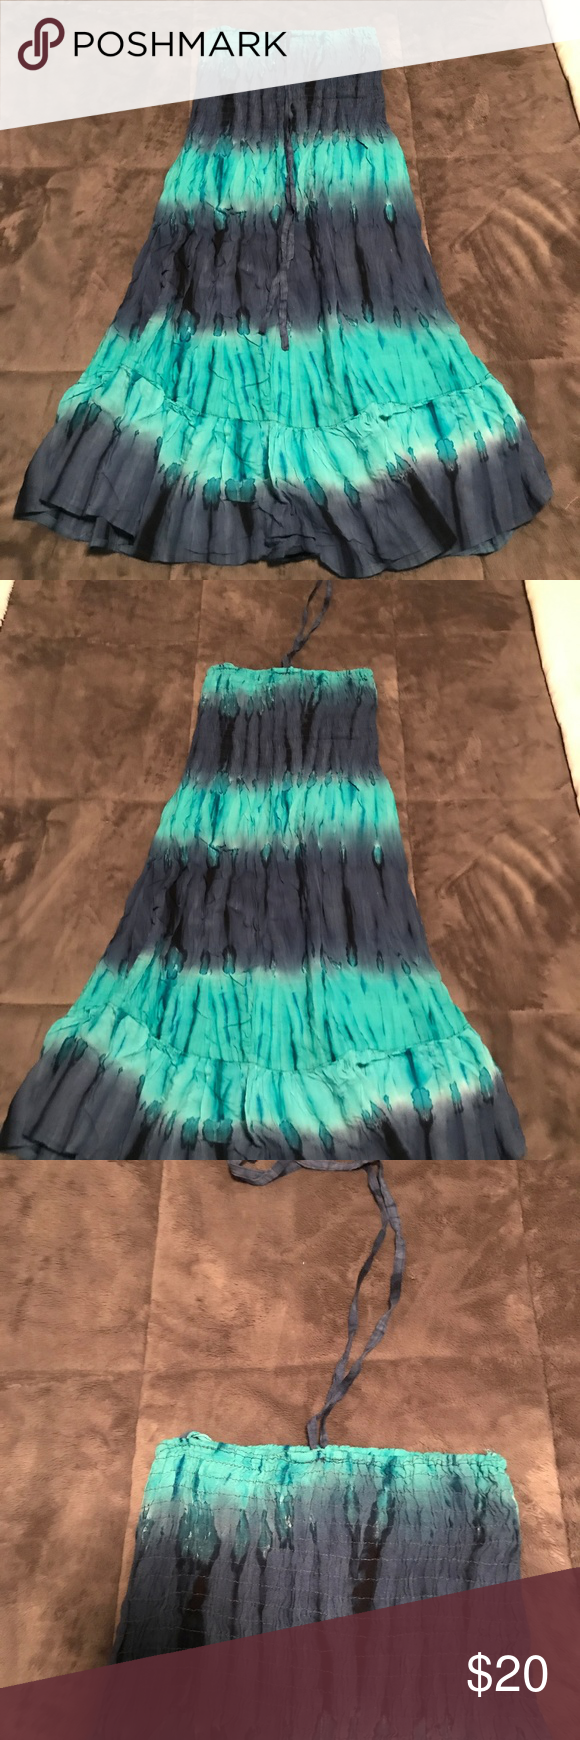 59afccd10c Smocked Blue Teal Dress PERFECT BEACH COVER UP India Boutique One Size Tie  Dye Smocked Dress Optional Halter India Boutique Swim Coverups